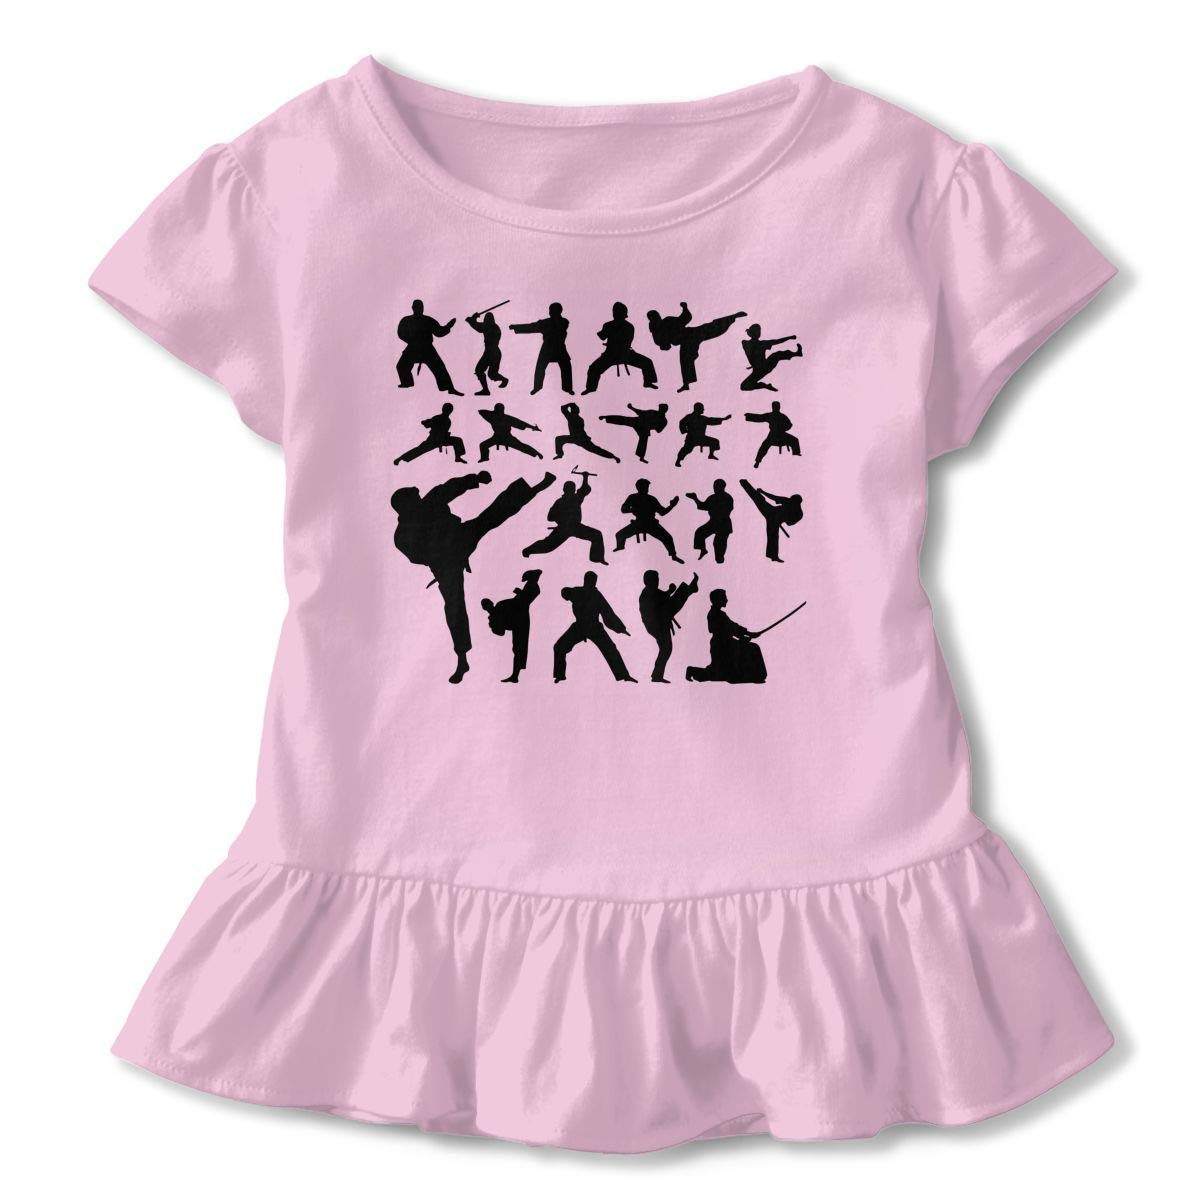 Variety of Martial Arts Action Silhouette Baby Girls Short Sleeve Ruffles T-Shirt Tops 2-Pack Cotton Tee